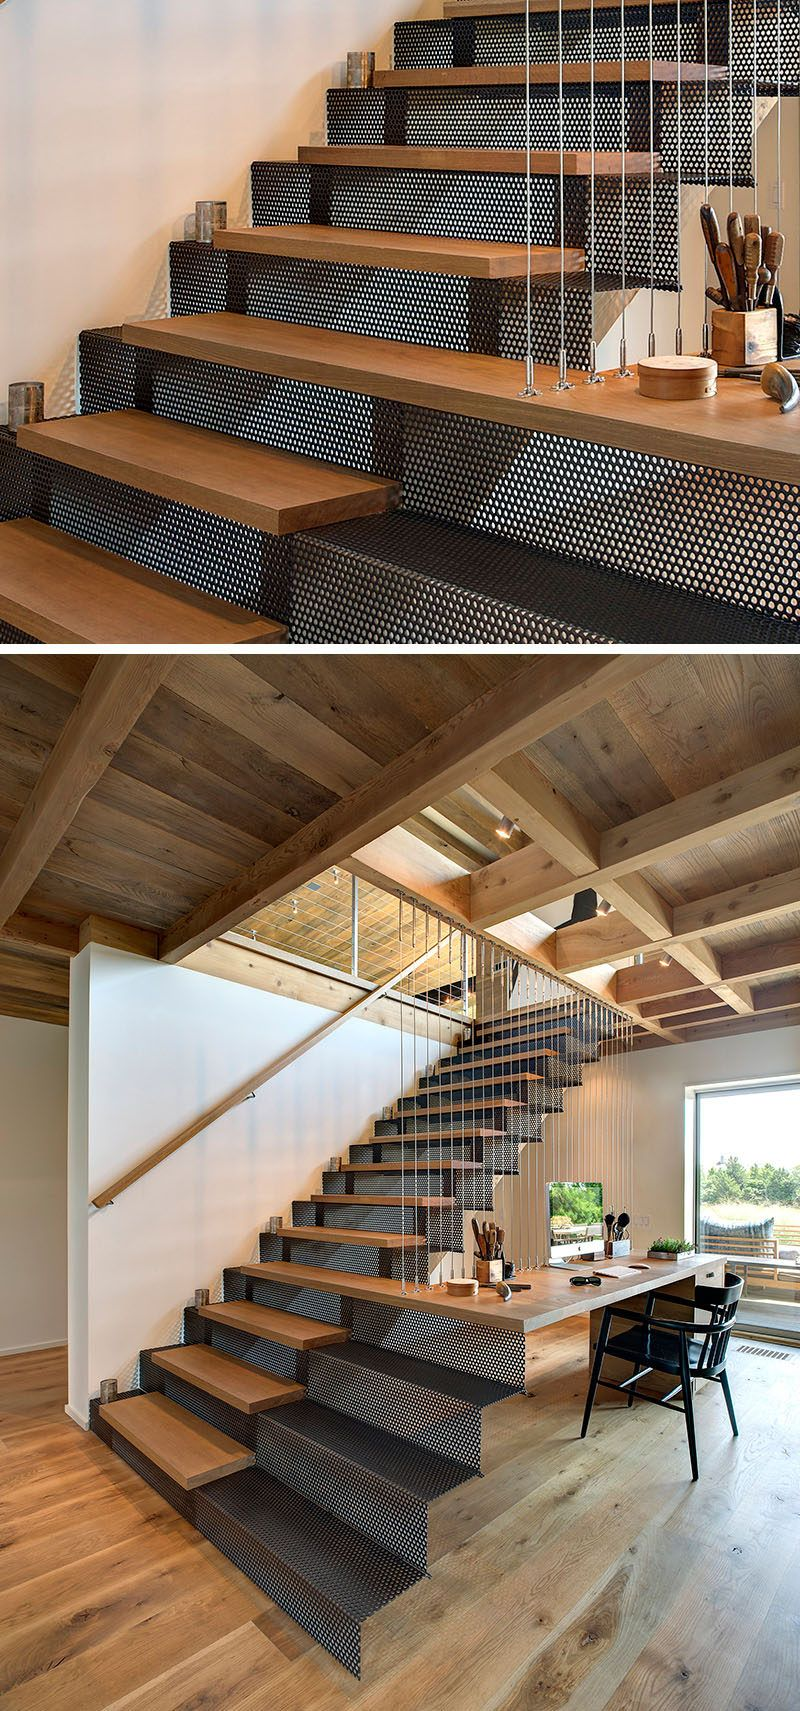 18 Examples Of Stair Details To Inspire You // These Wood And Perforated  Steel Stairs